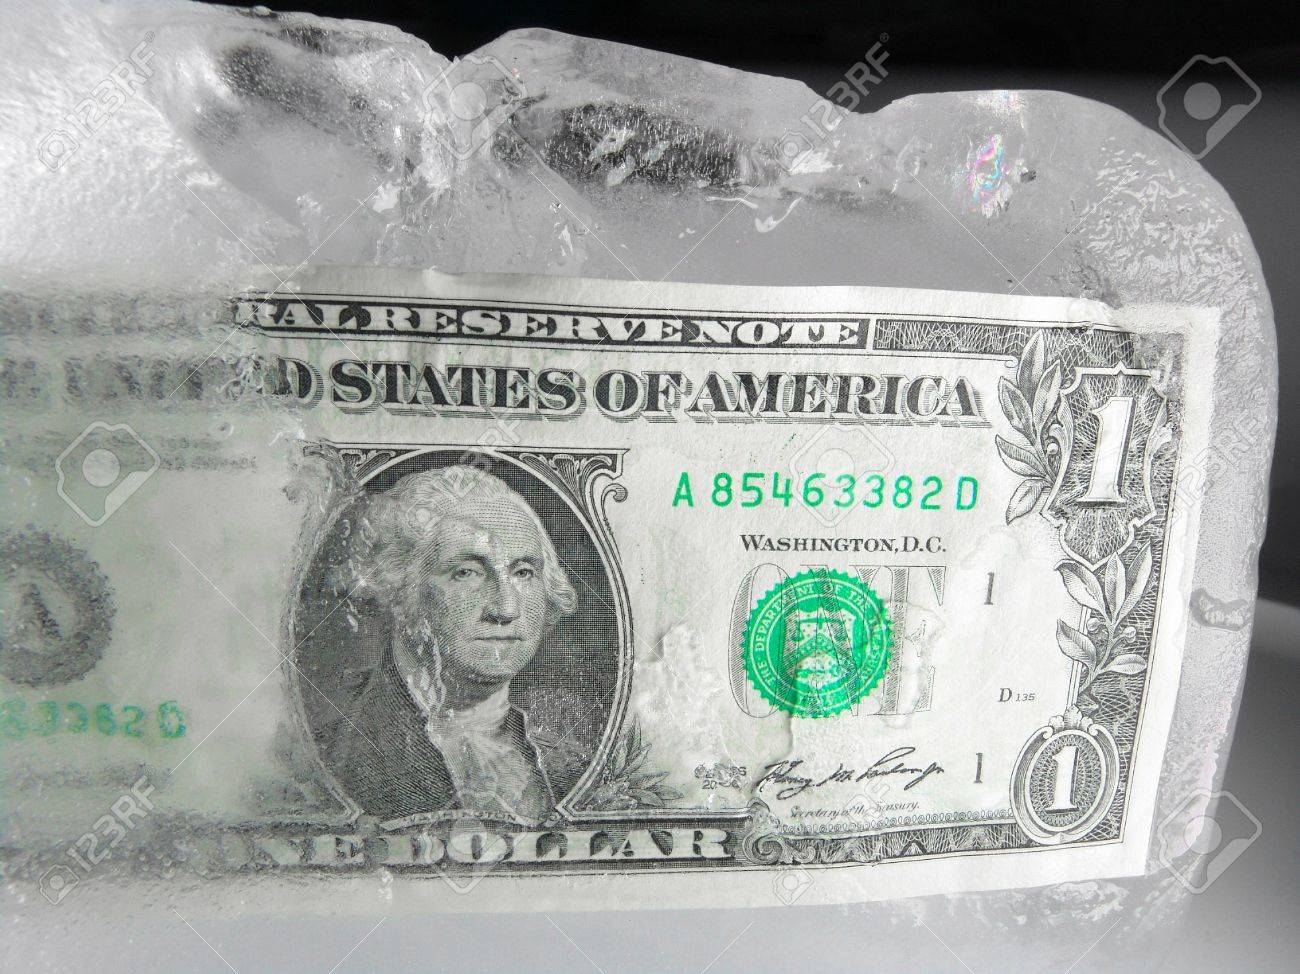 US paper currency (one dollar) in half frozen ice representing